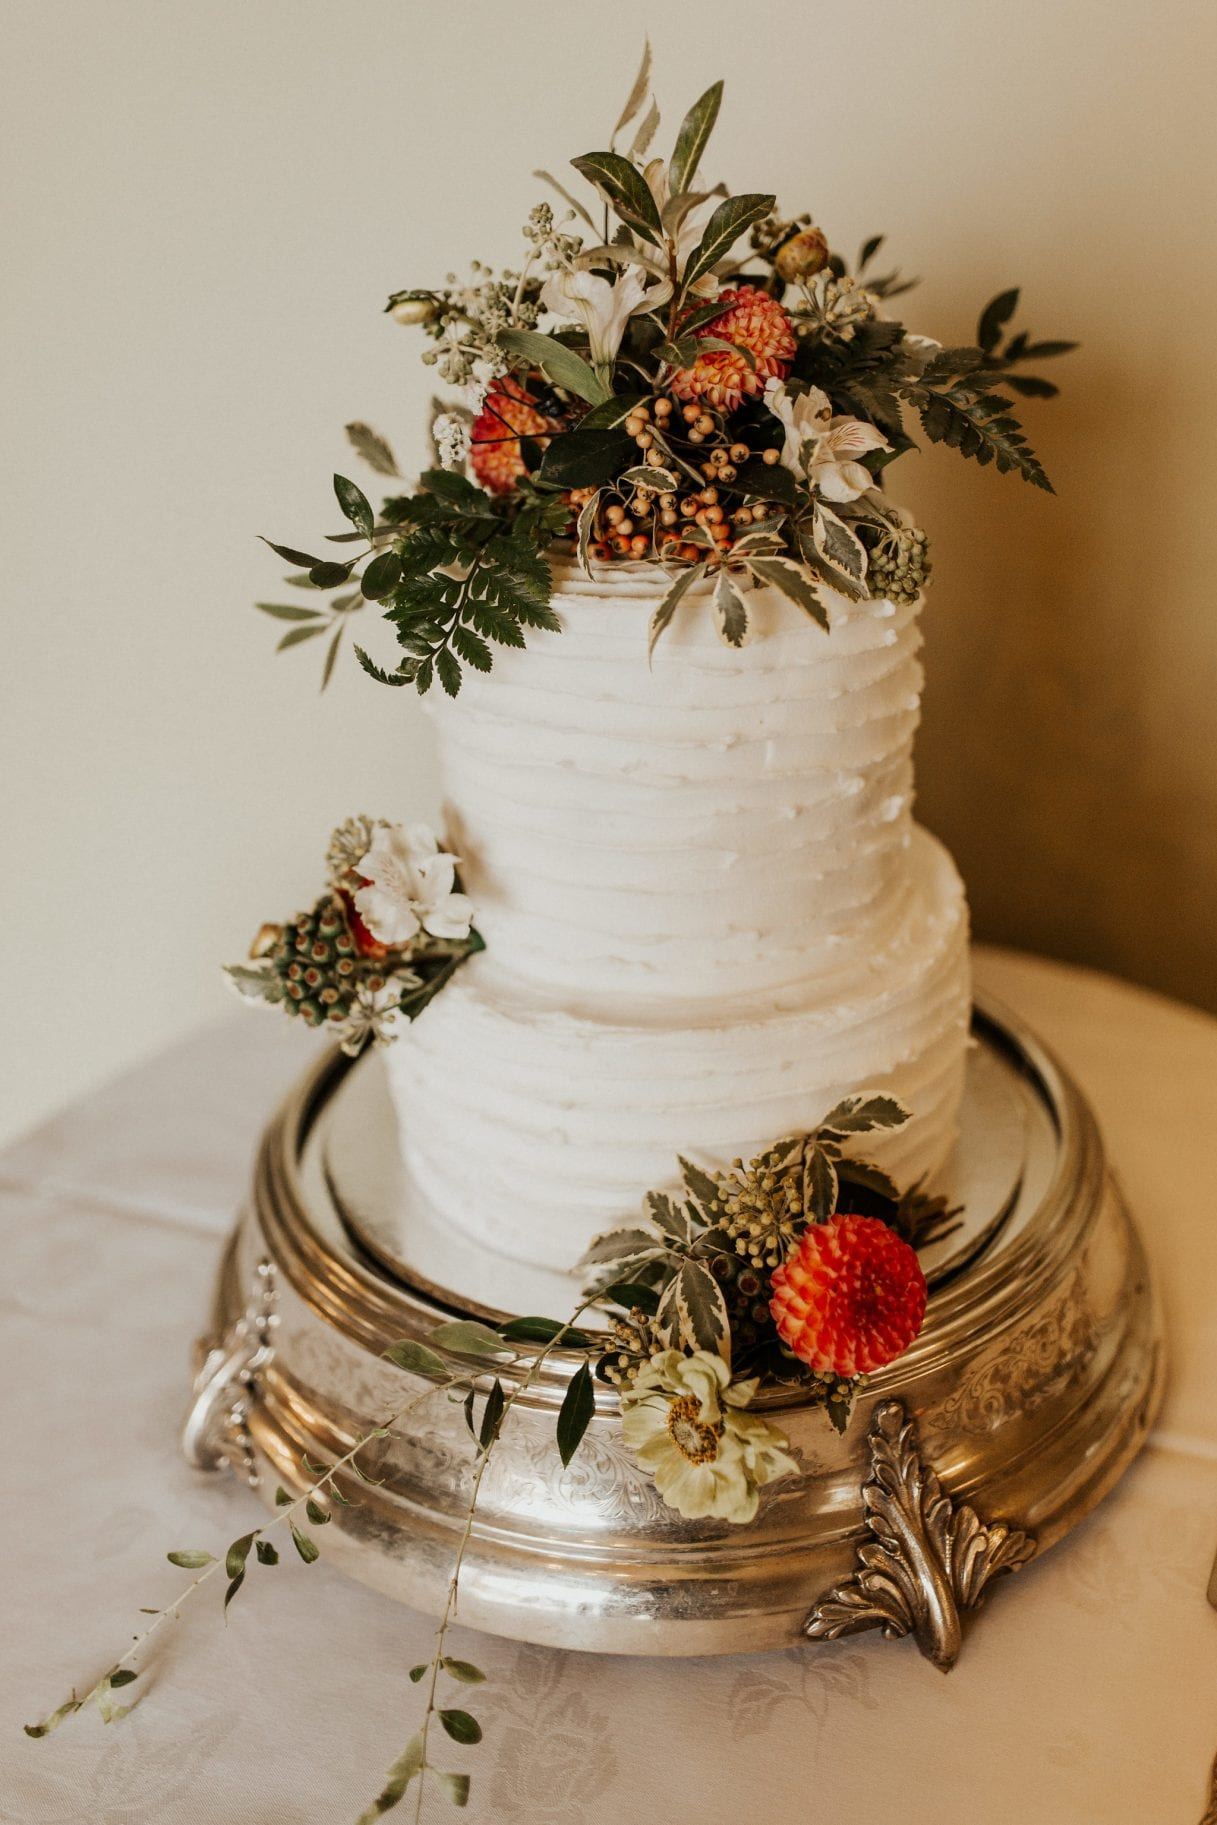 Beautiful layered wedding cake with flower decorations